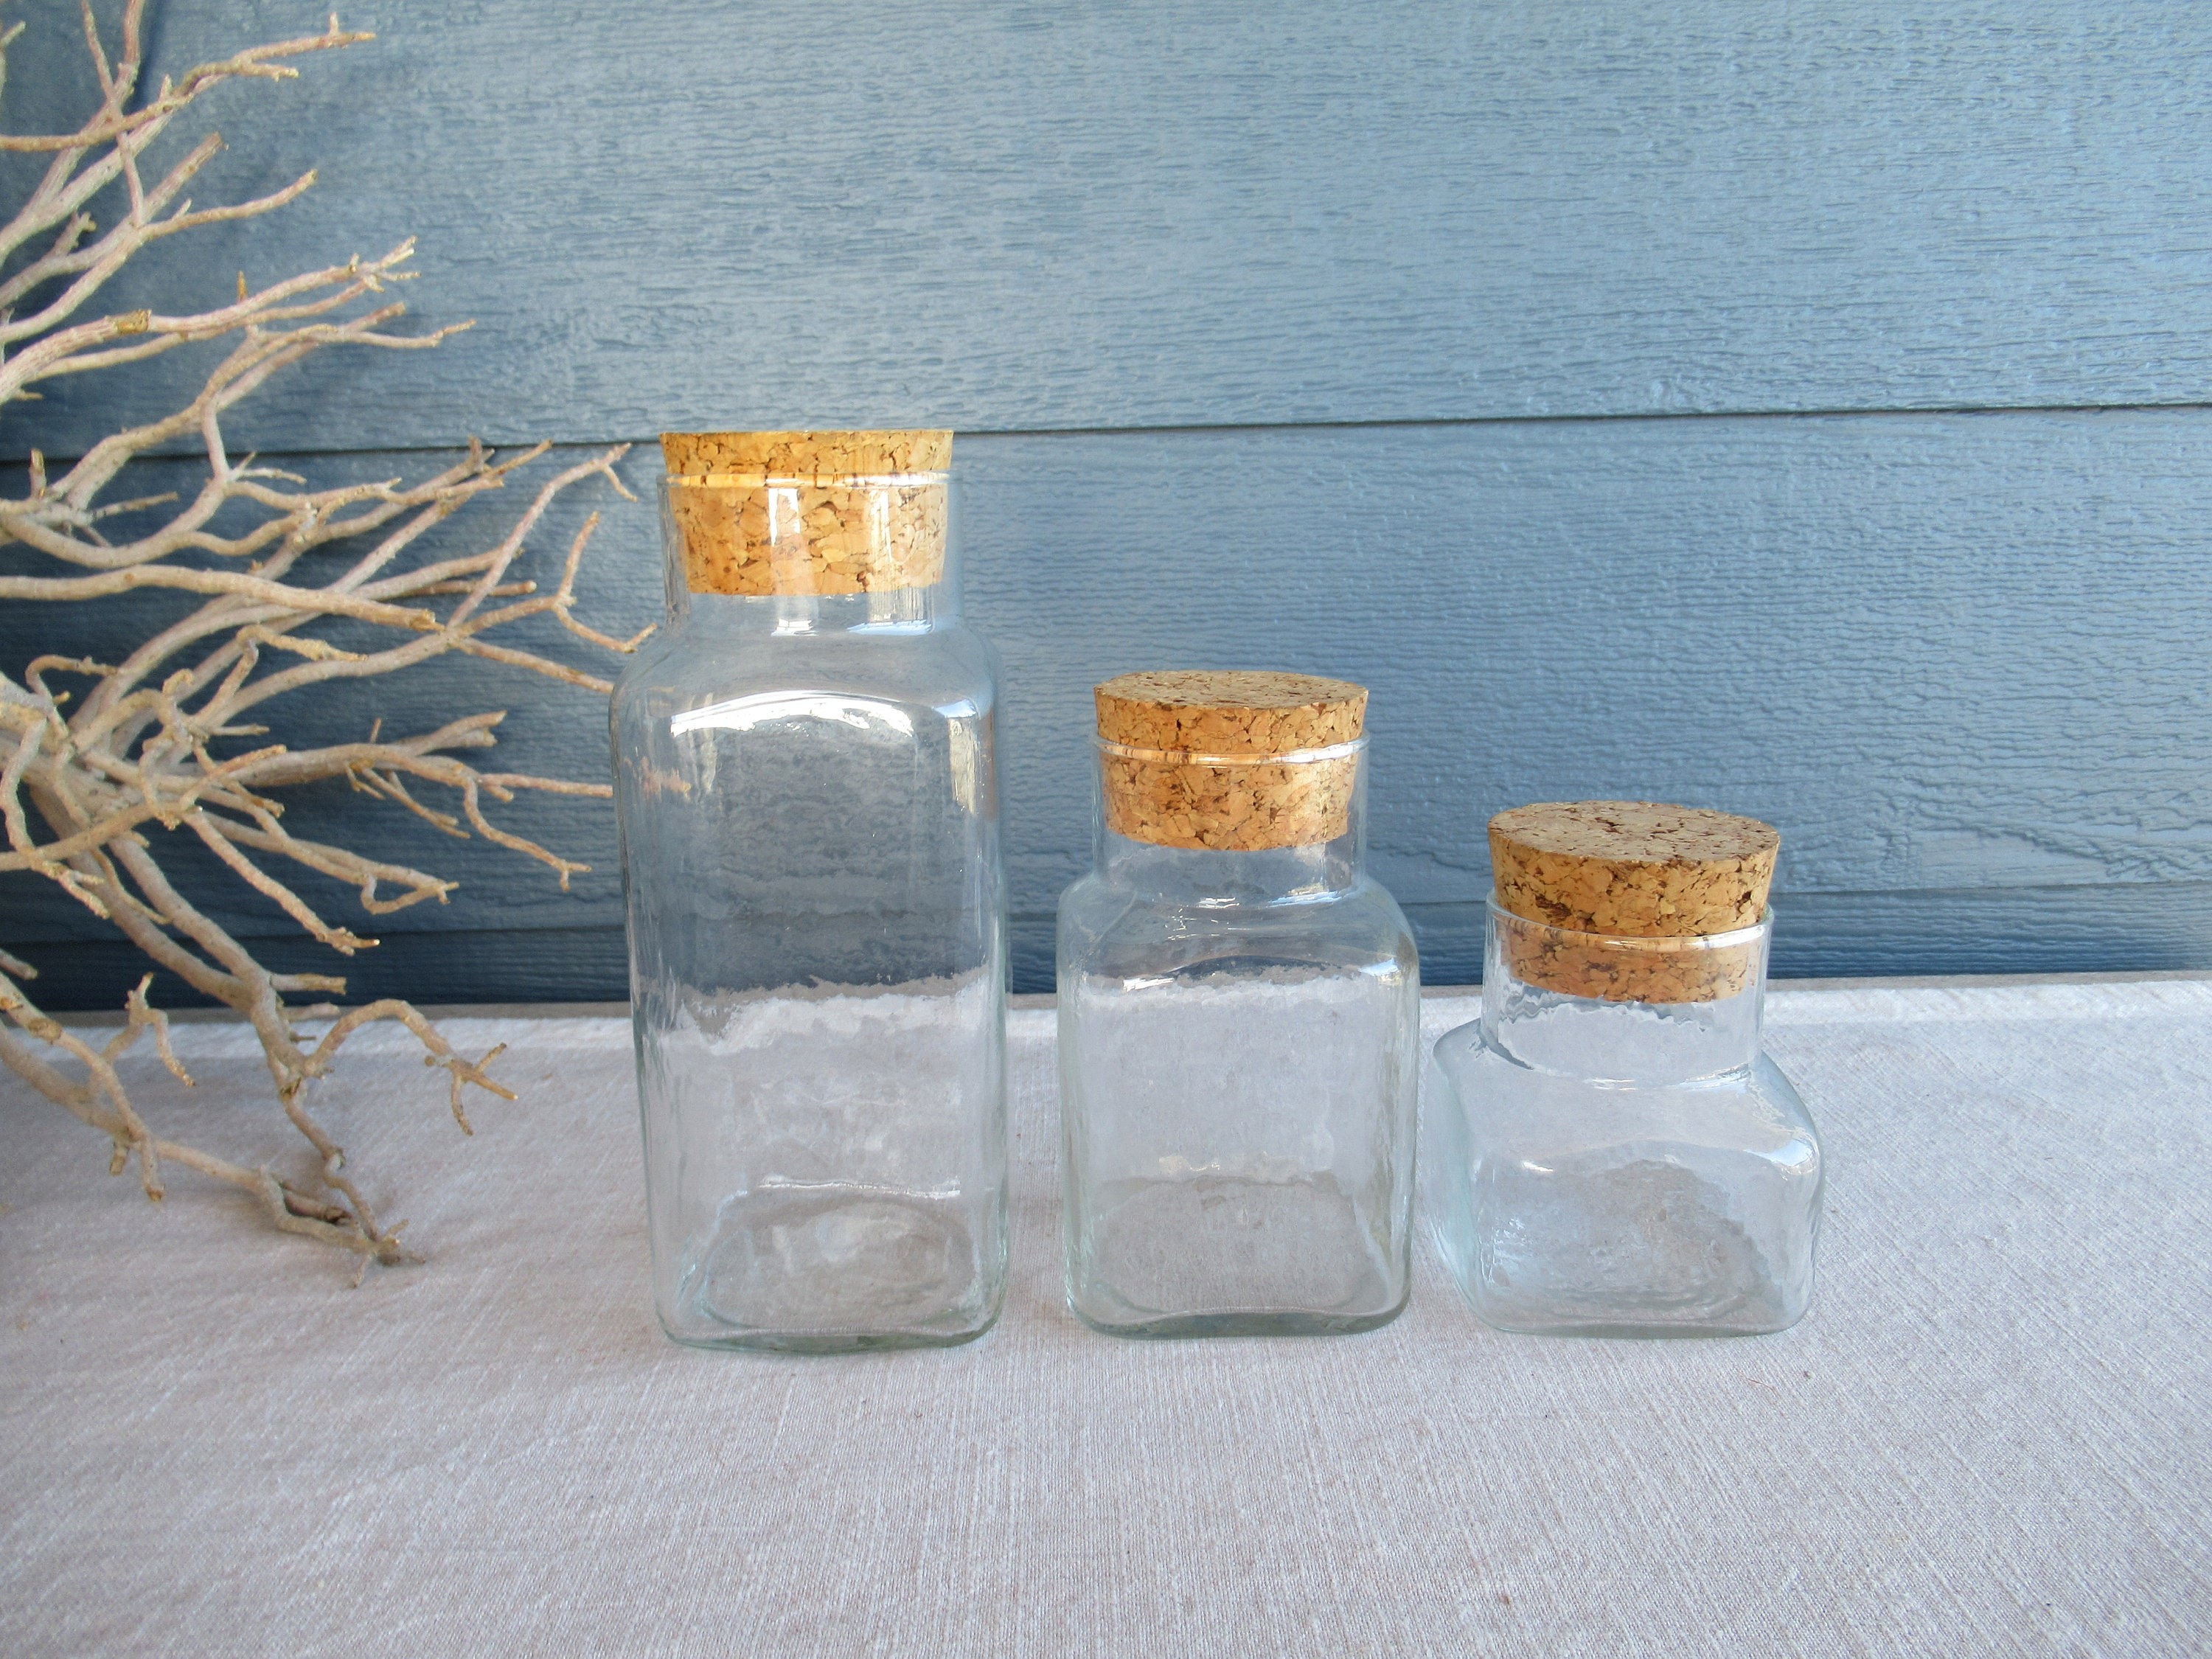 Set Of 3 Vintage Glass Storage Jars With Cork Lids Square Etsy